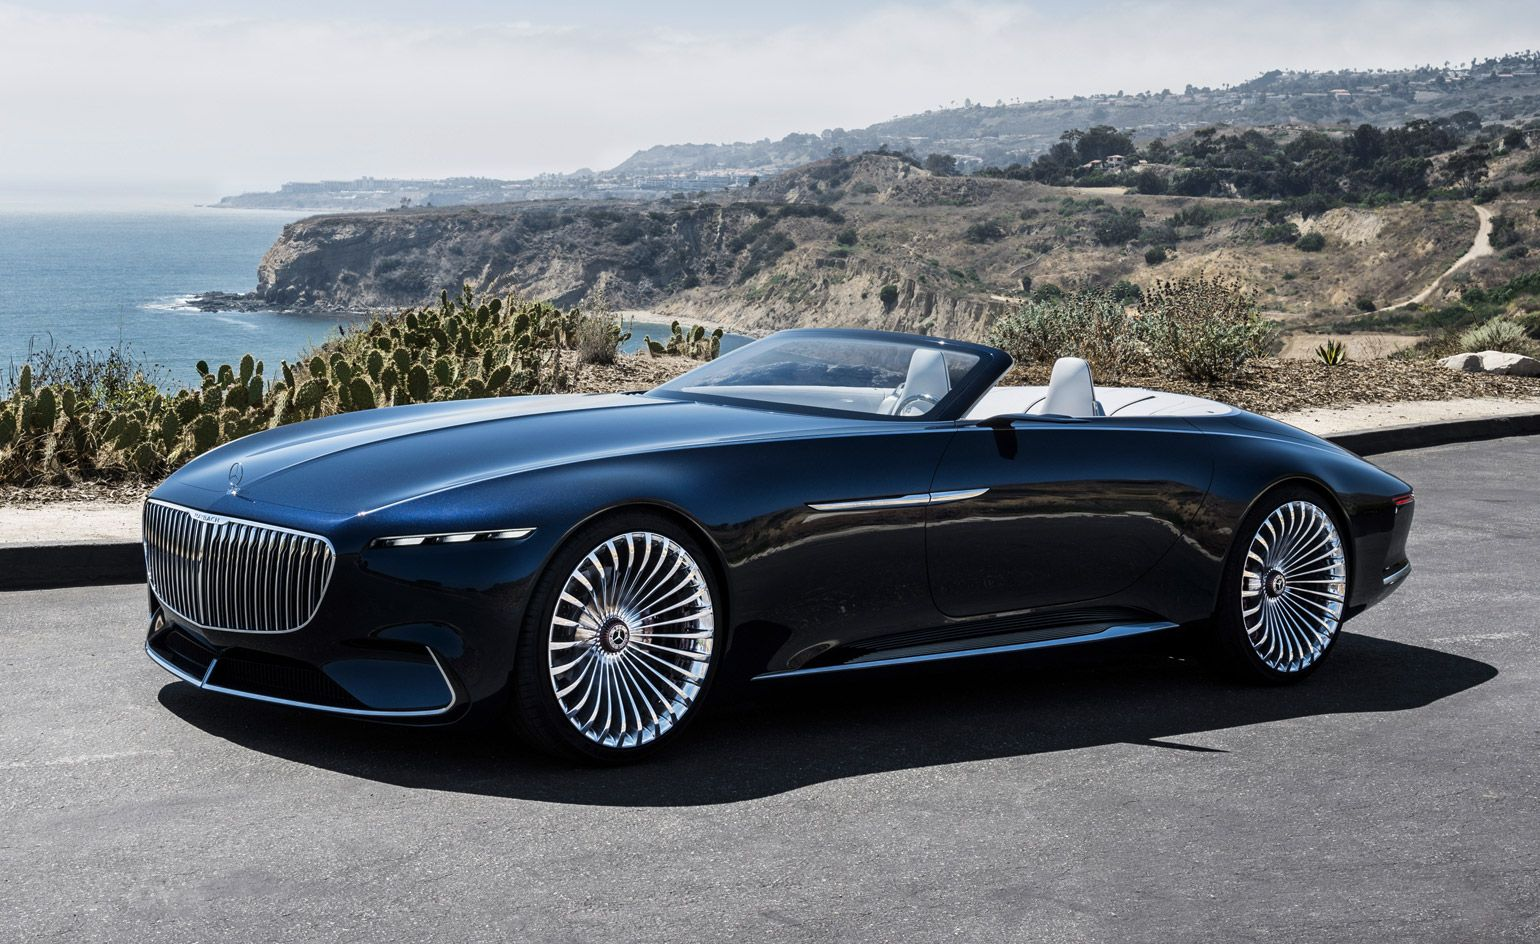 The New Reality Mercedes Maybach Unveils The Super Luxury Electric